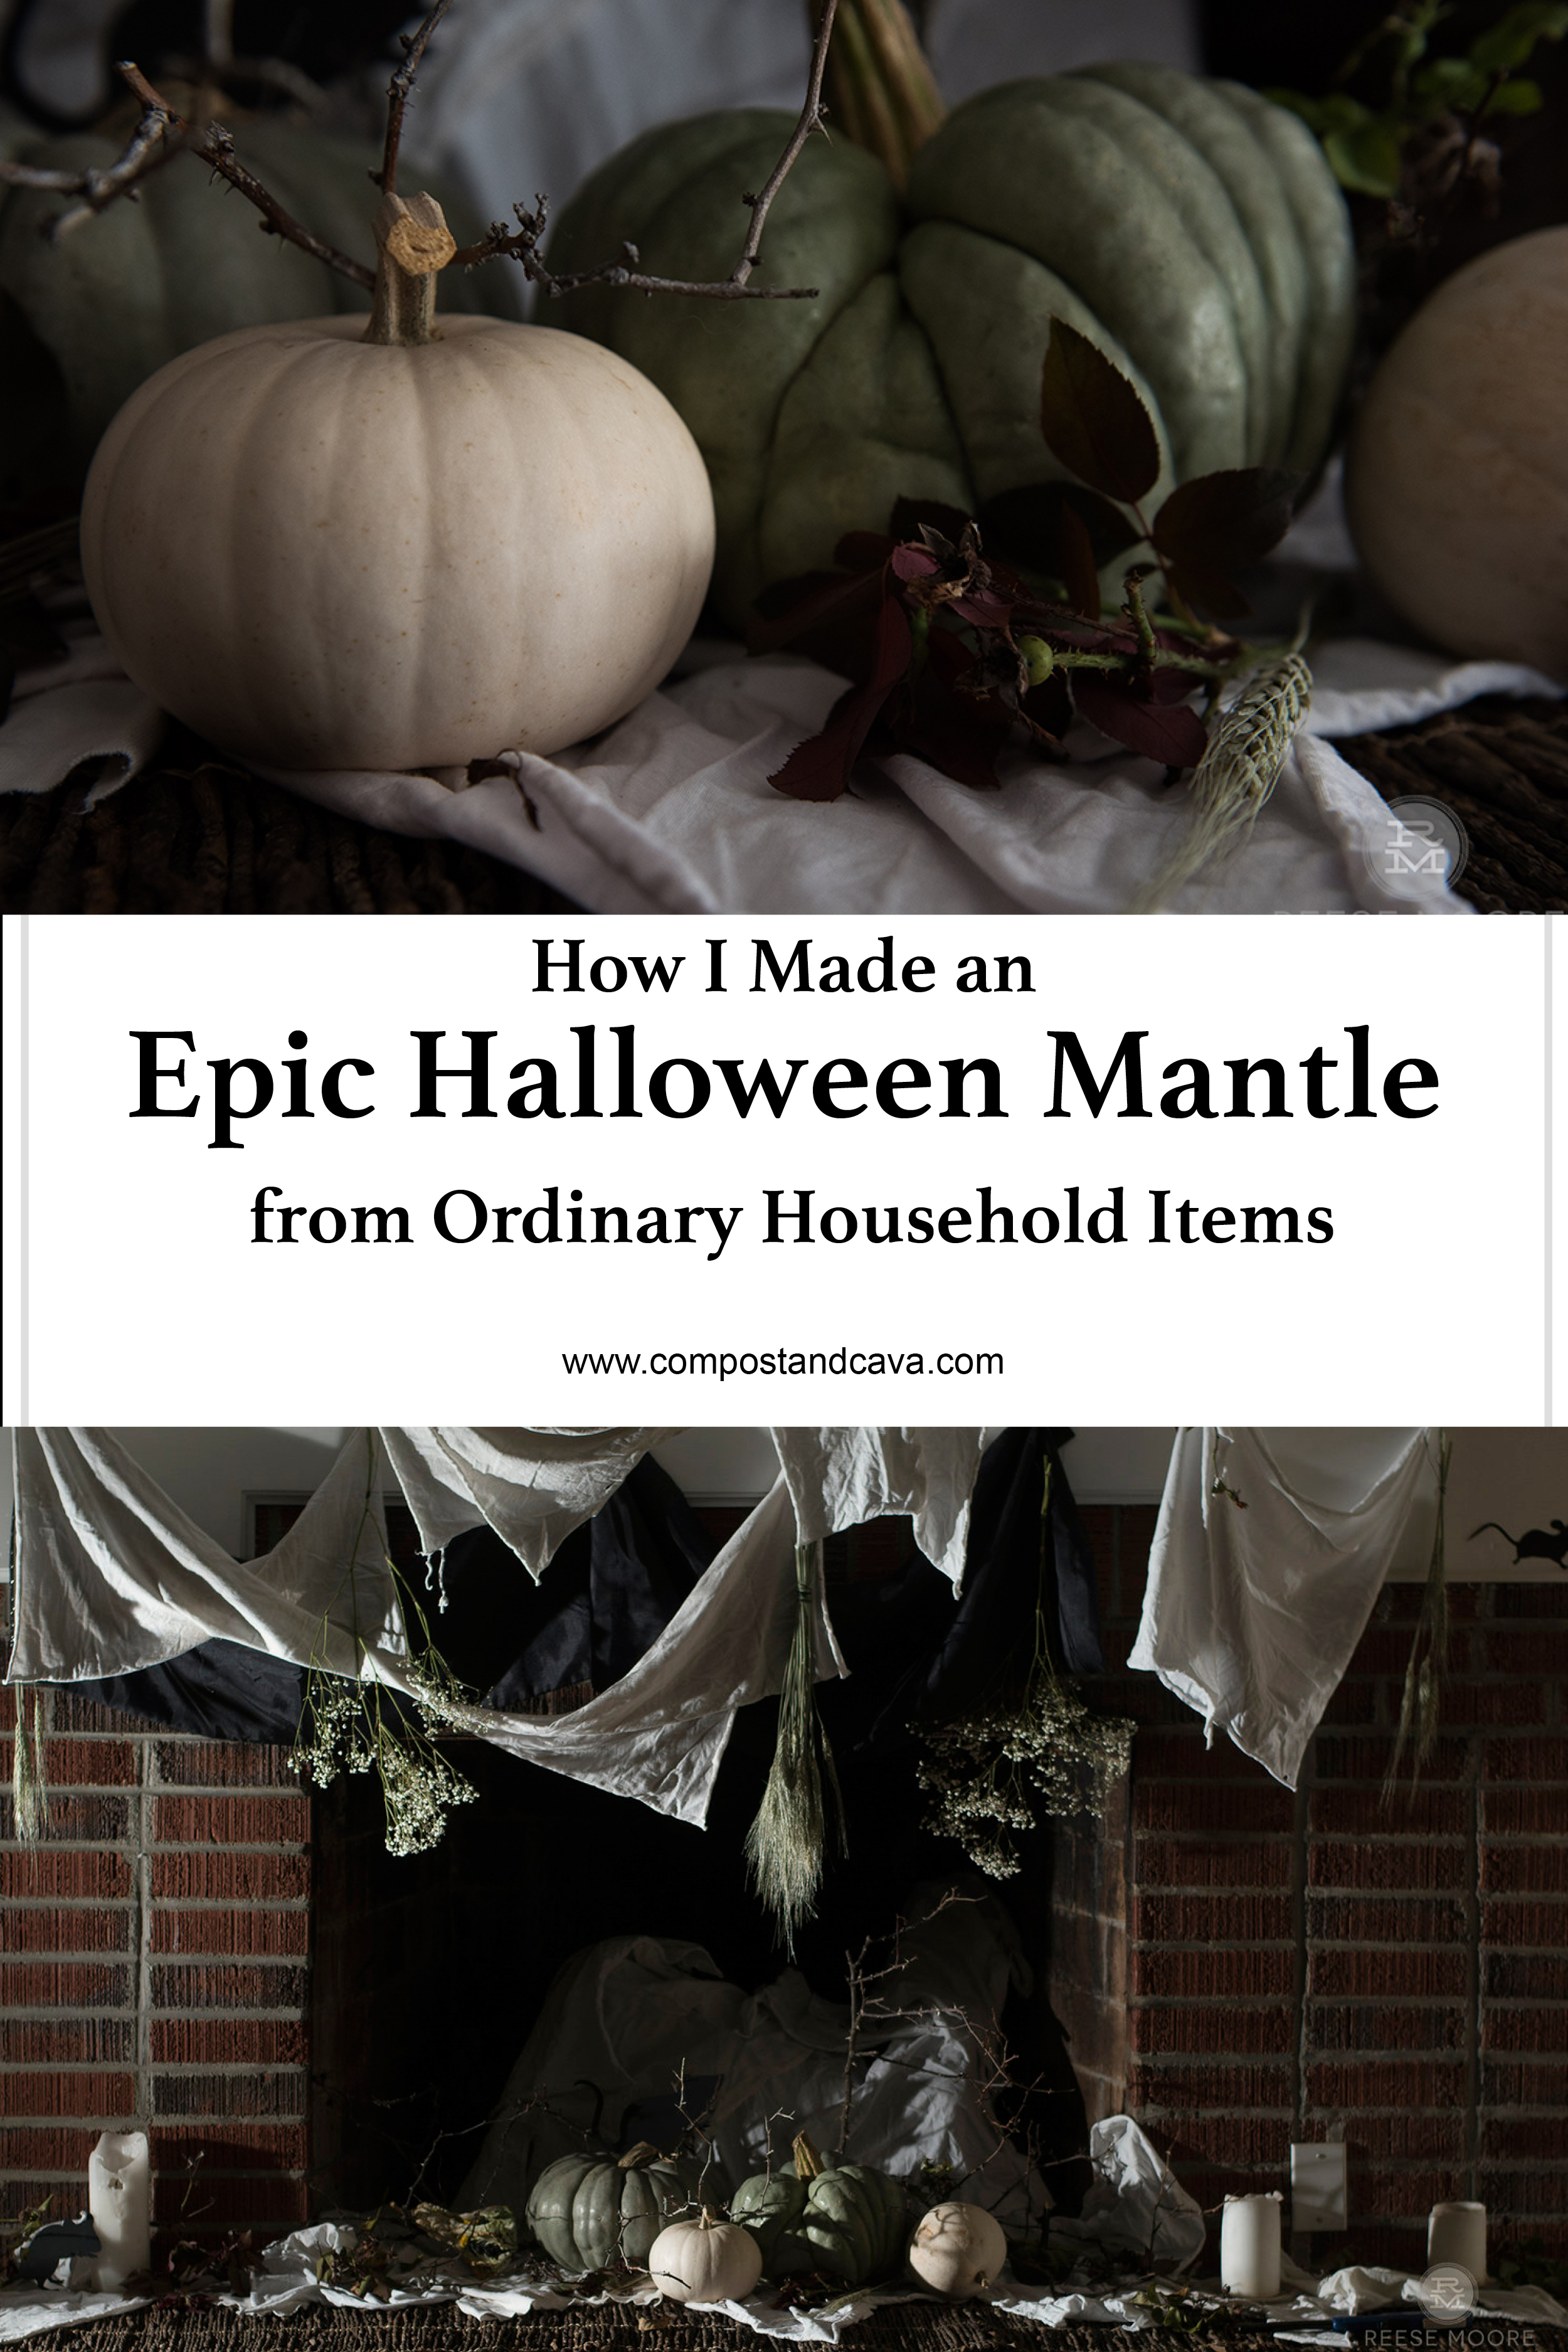 How I Made an Epic Halloween Mantle from Ordinary Household Items